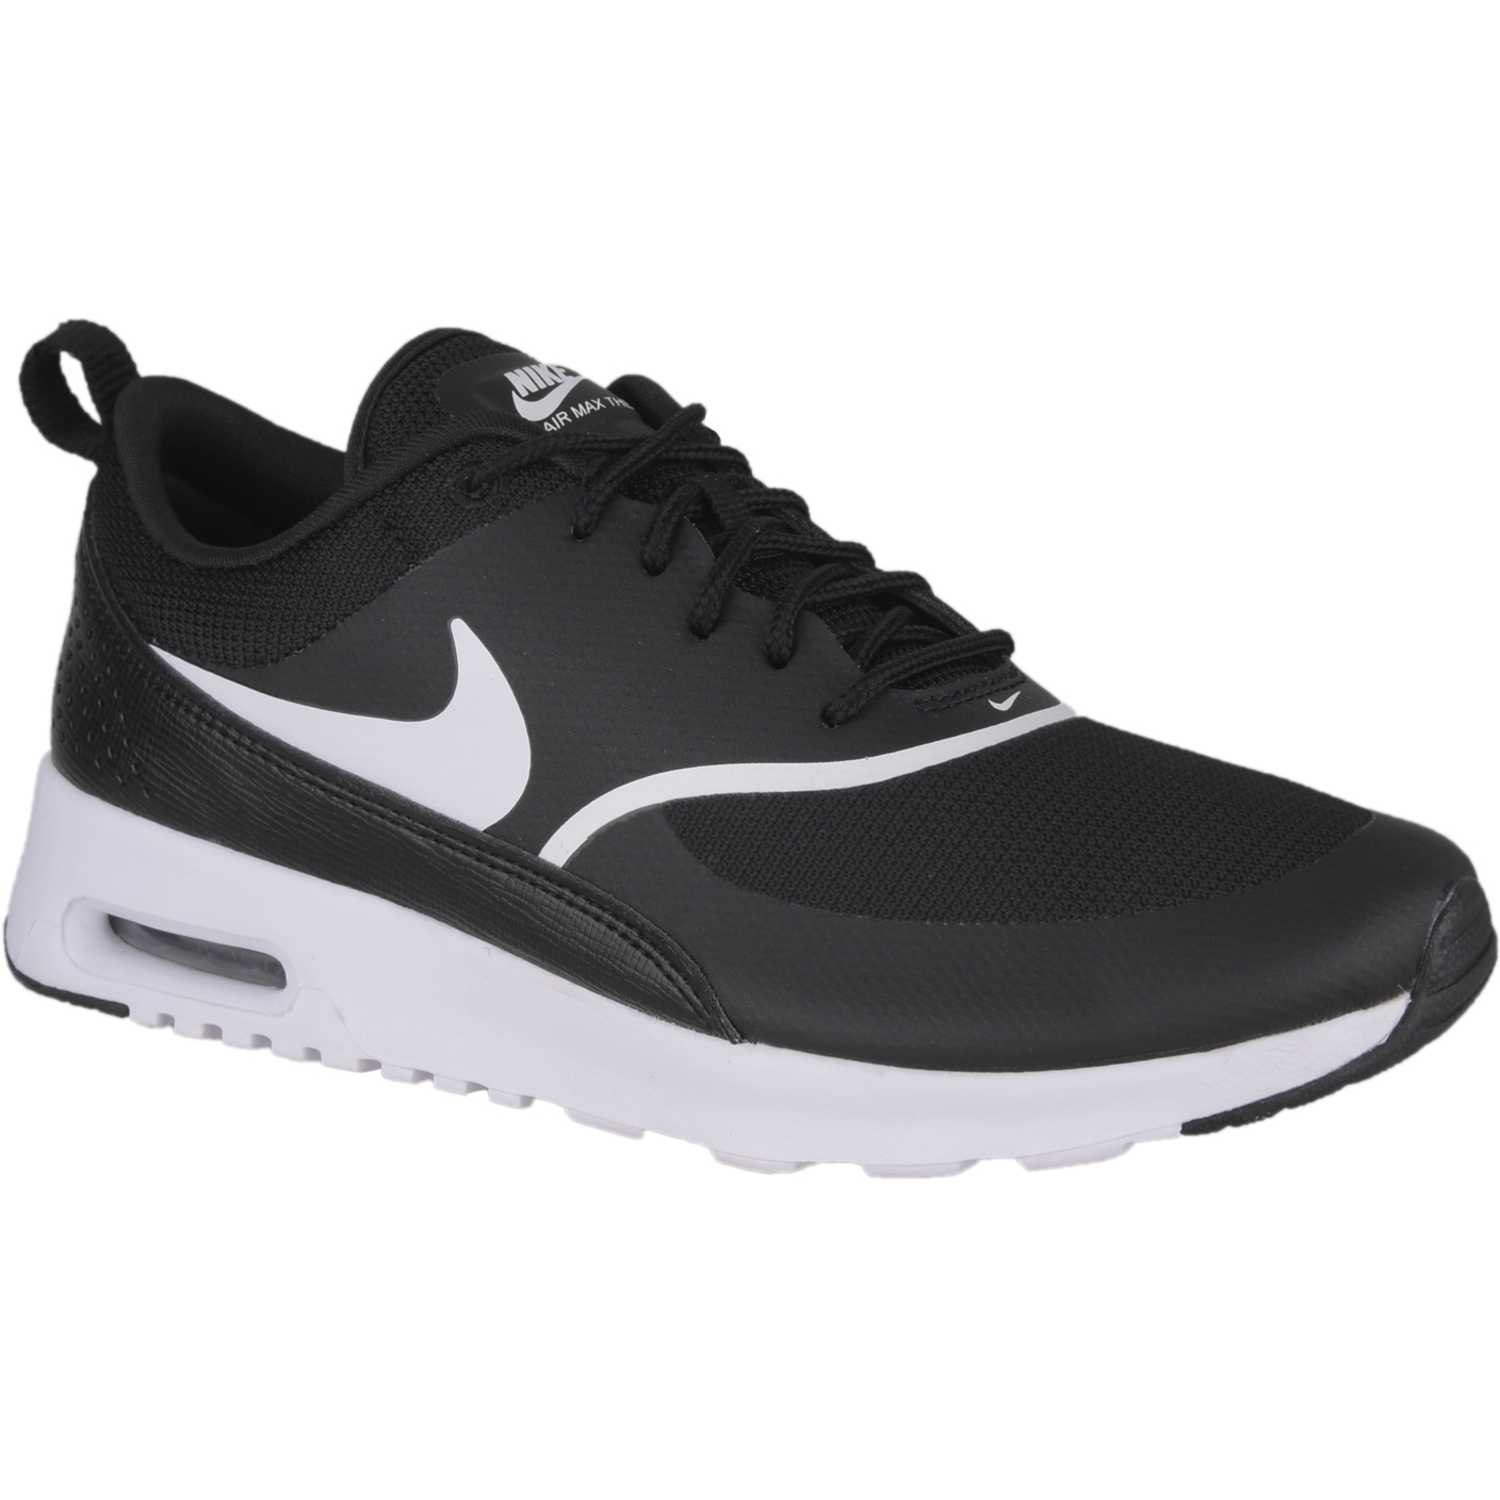 Casual de Mujer Nike Negro blanco wmns air max thea